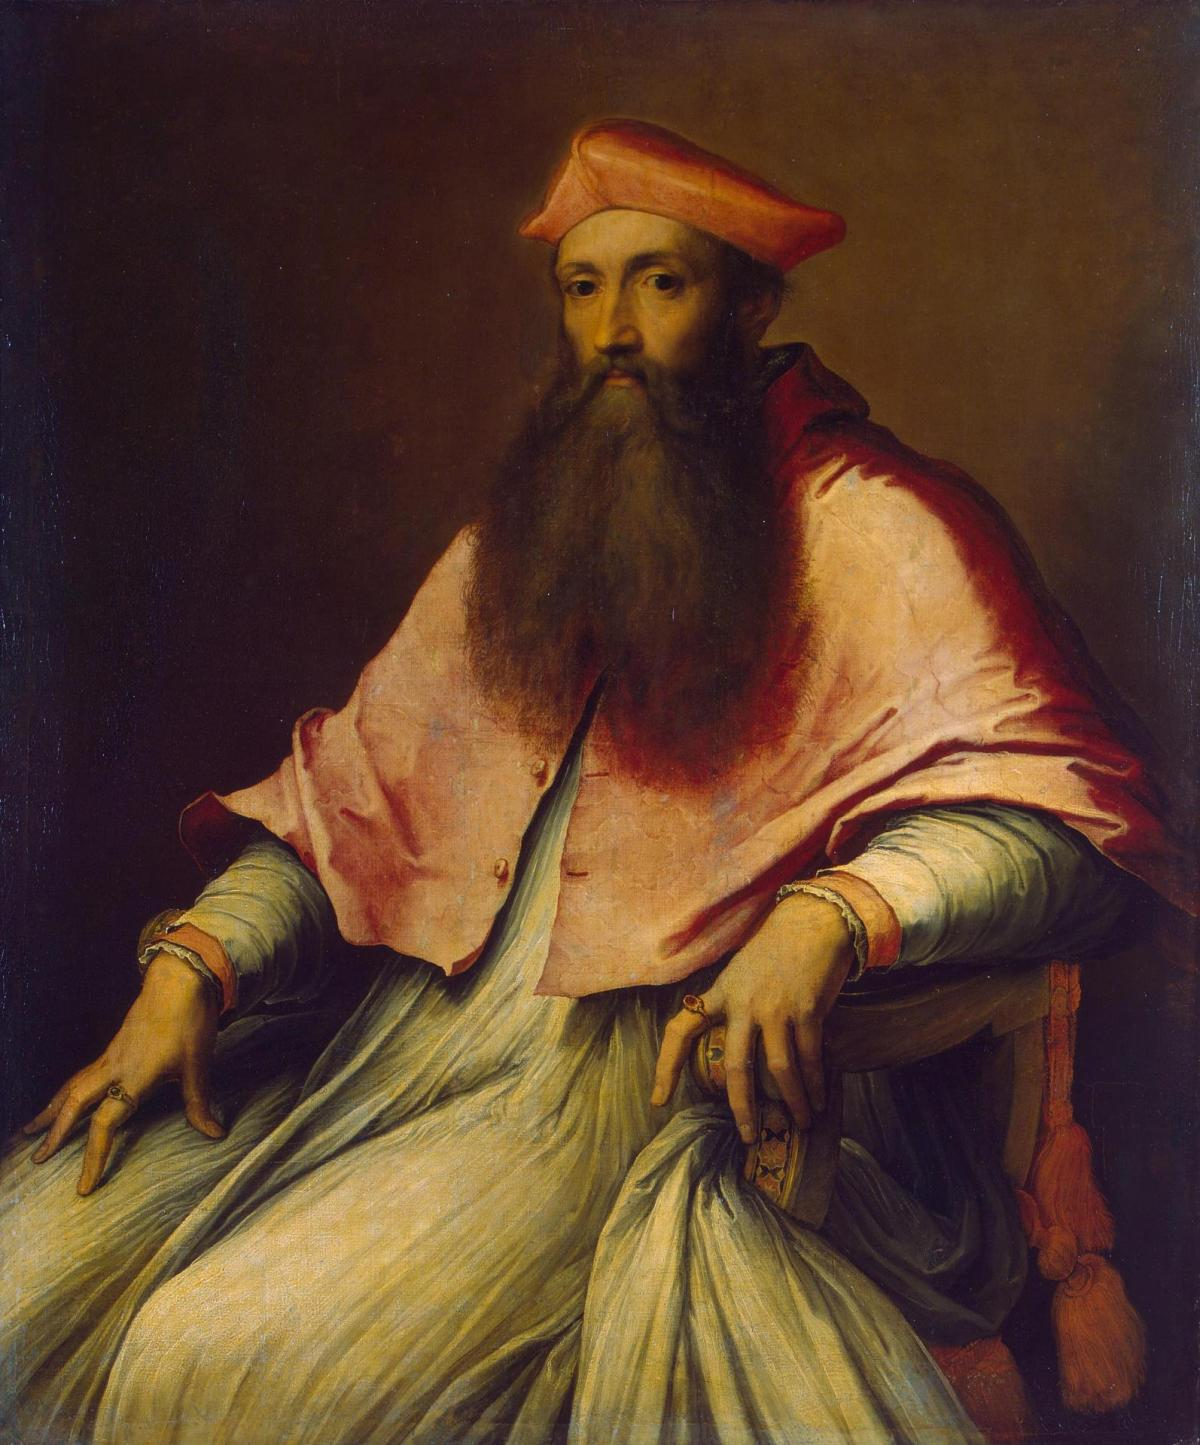 Portrait of Cardinal Reginald Pole by Sebastiano del Piombo